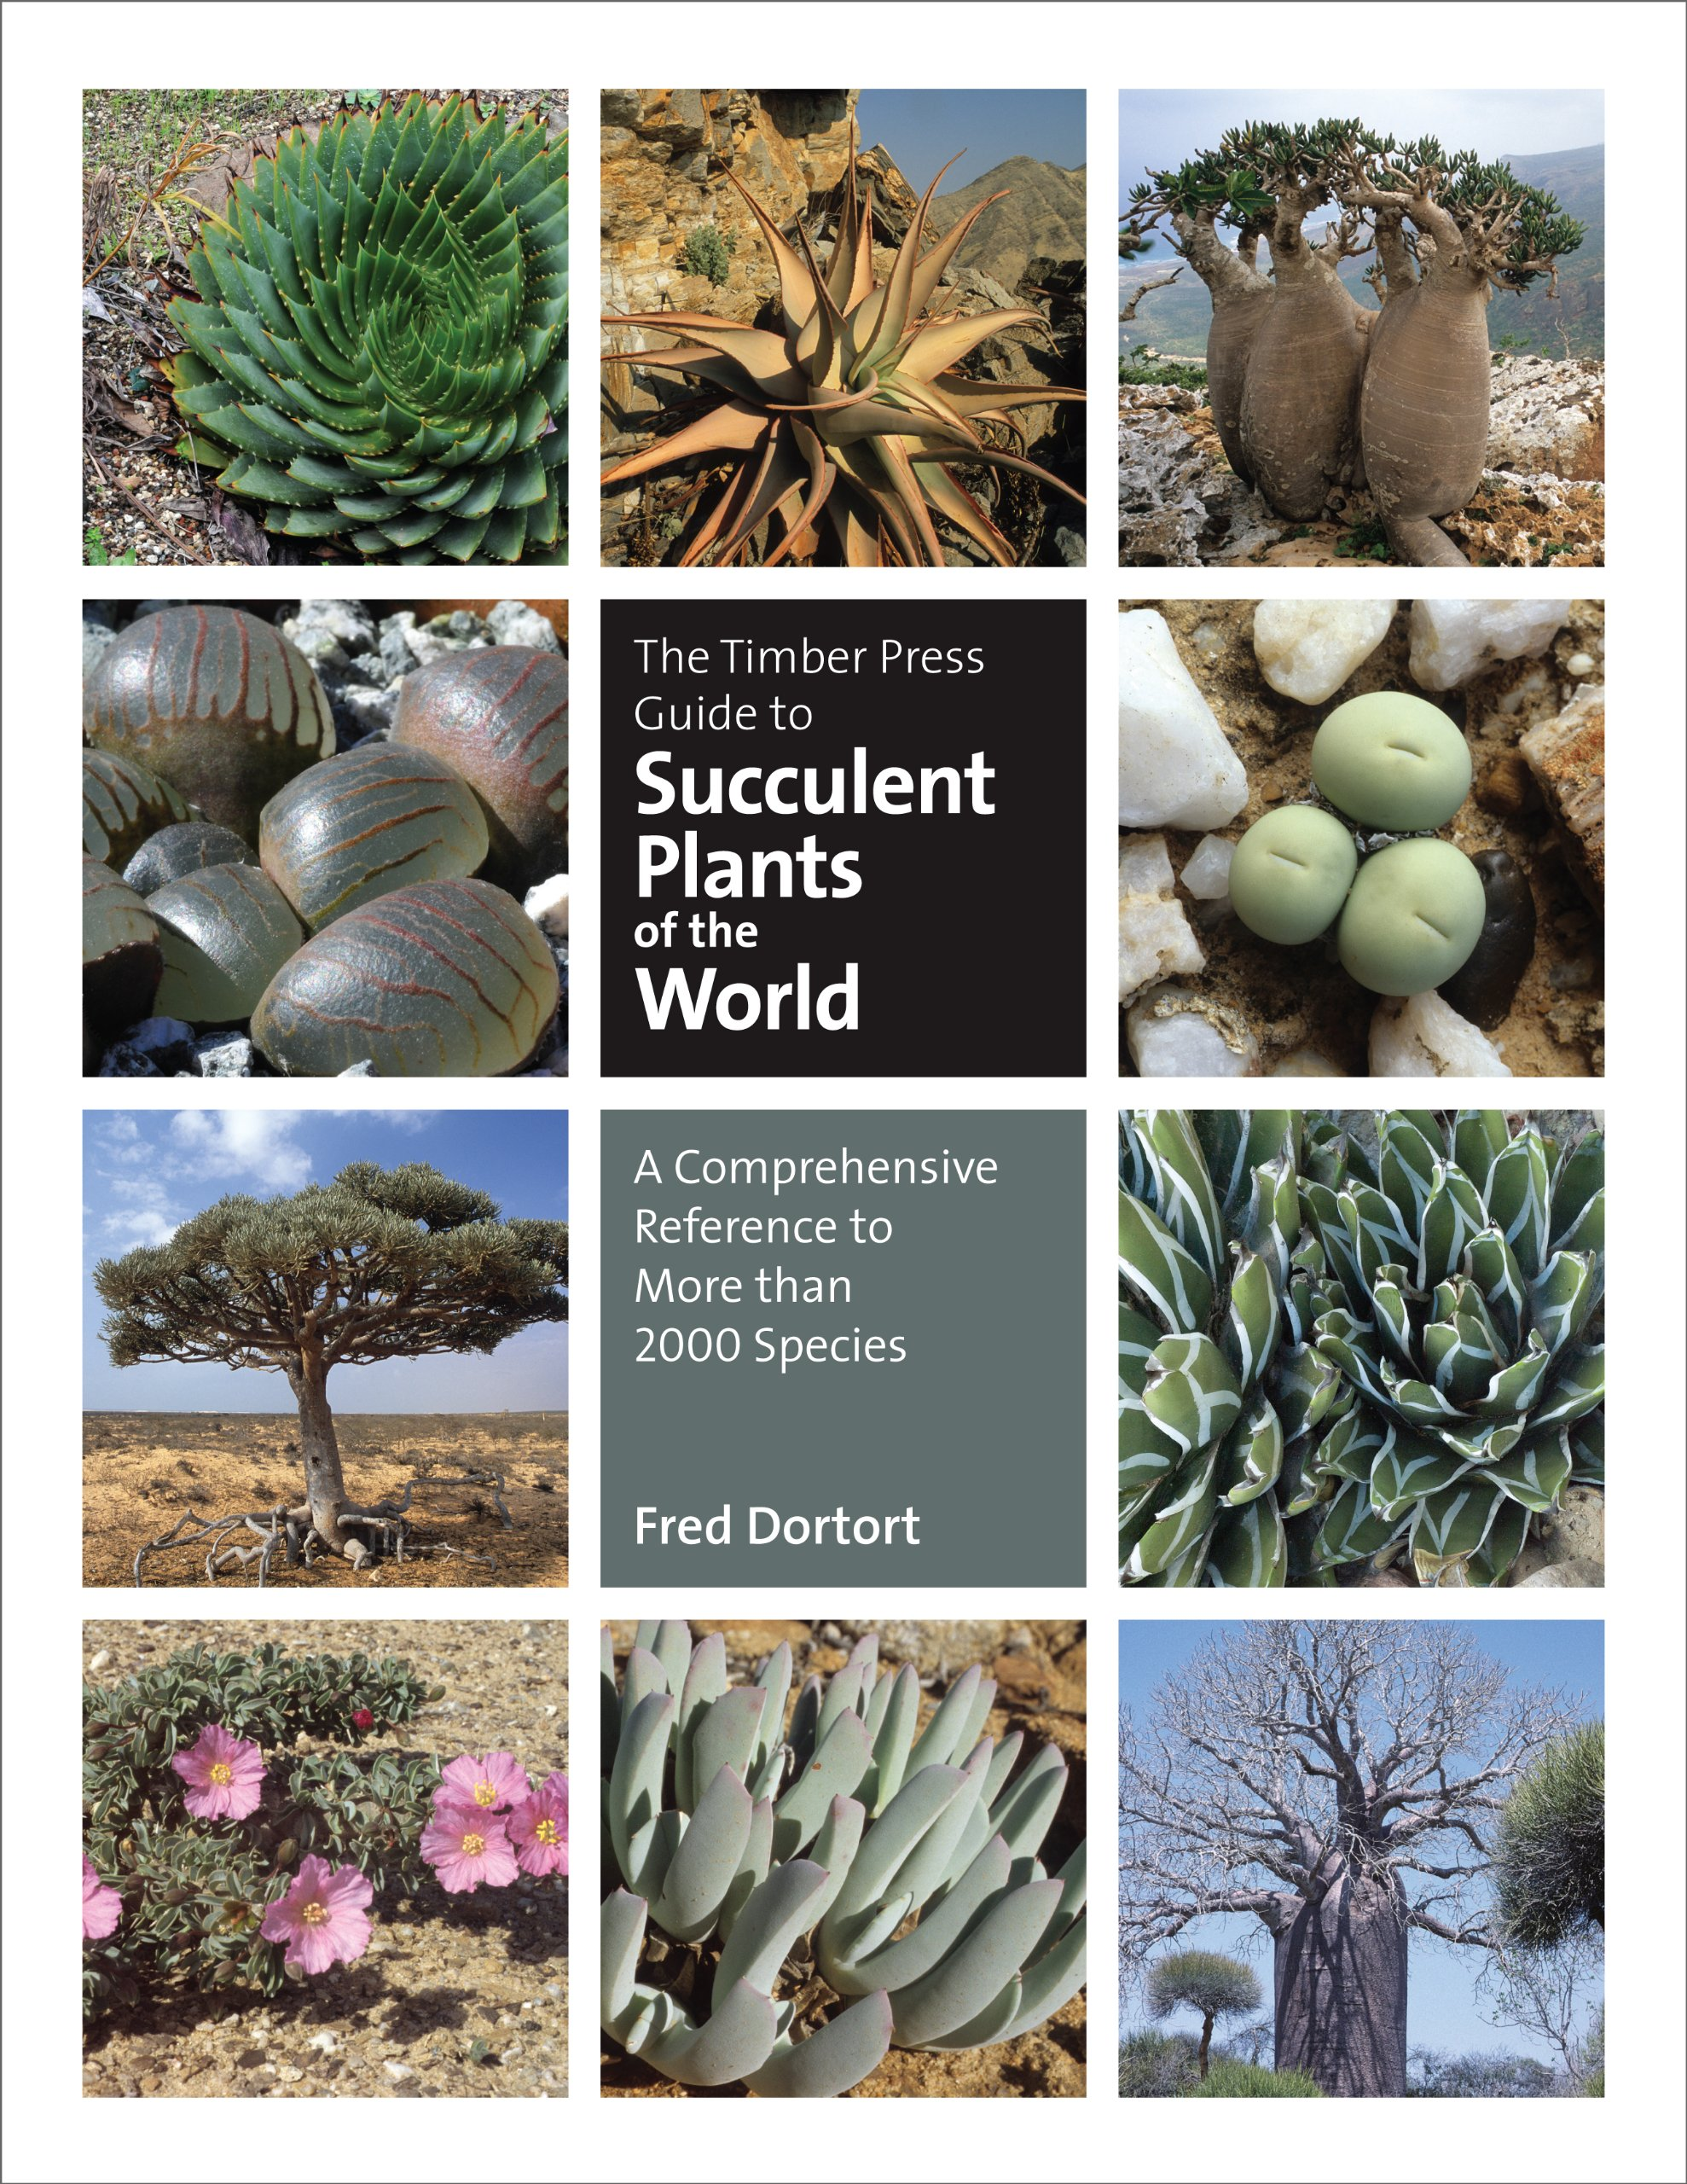 Image OfThe Timber Press Guide To Succulent Plants Of The World: A Comprehensive Reference To More Than 2000 Species (English Edit...